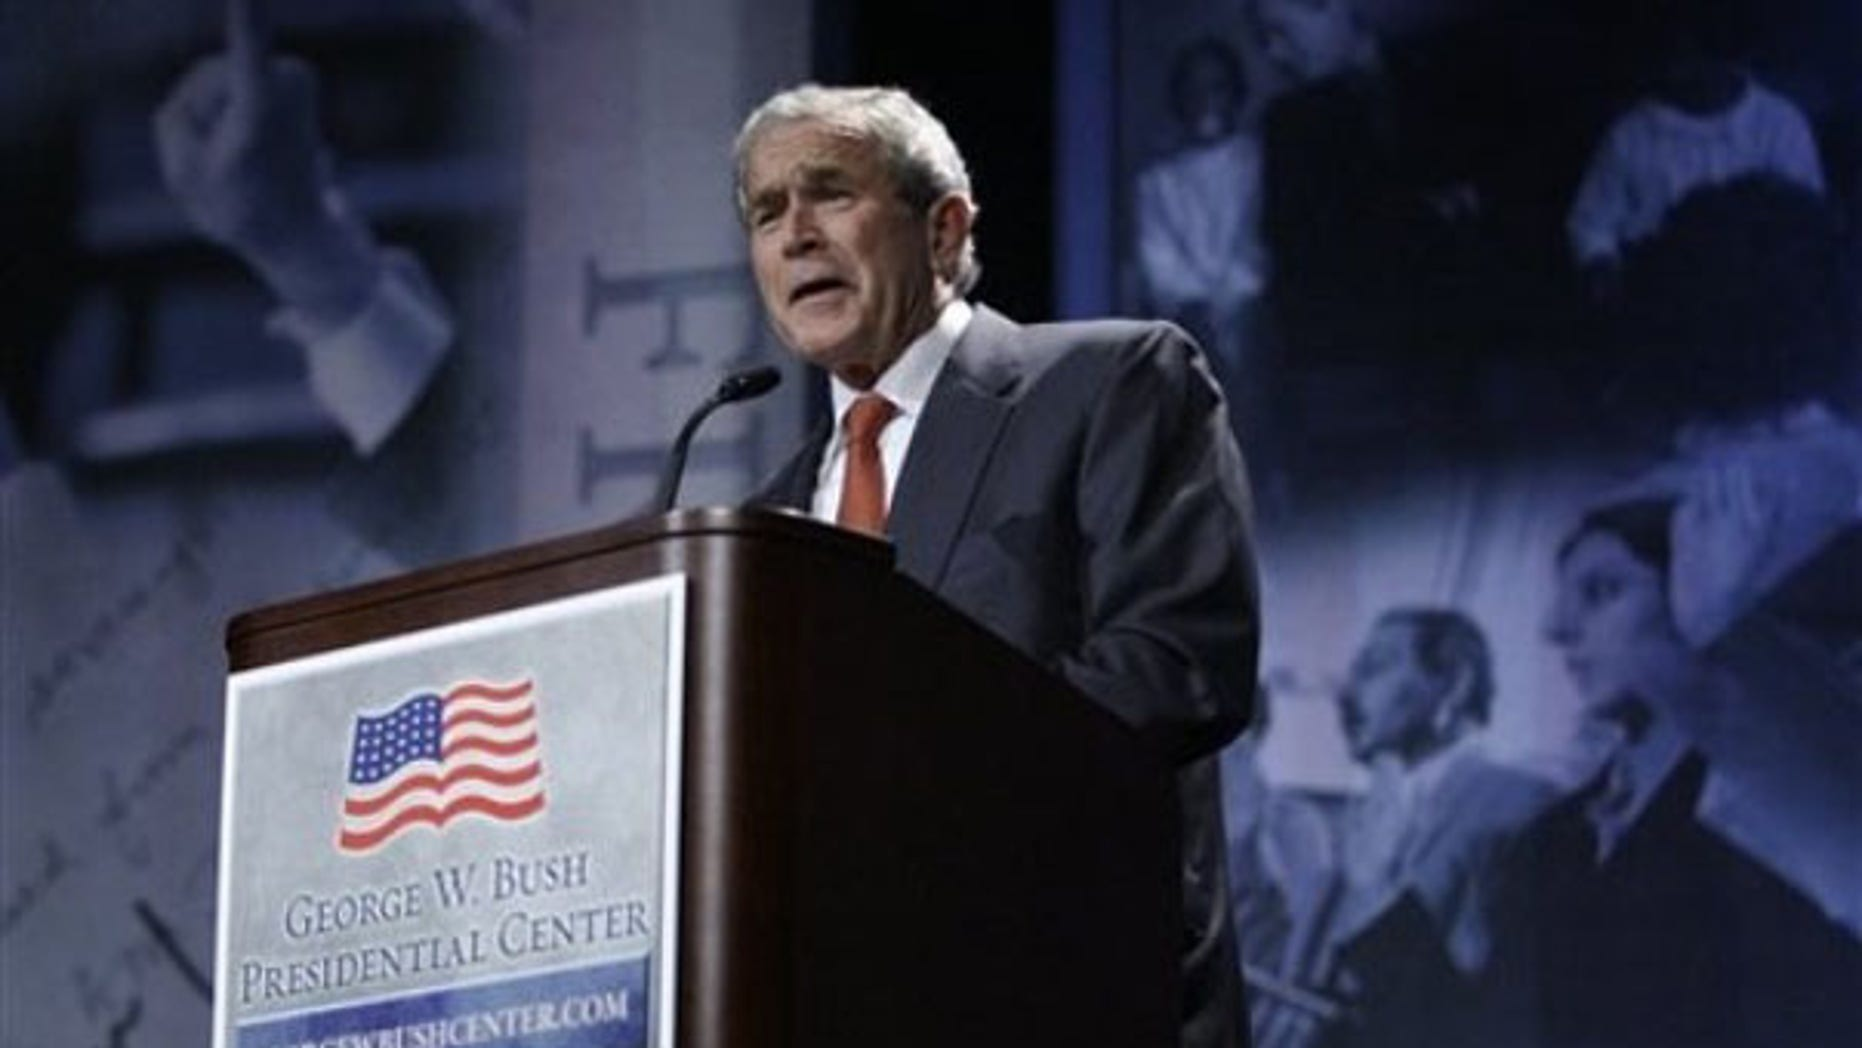 Former President George W. Bush delivers a speech on the SMU campus about the Bush Presidential Center Nov. 12, 2009, in Dallas. (AP Photo)